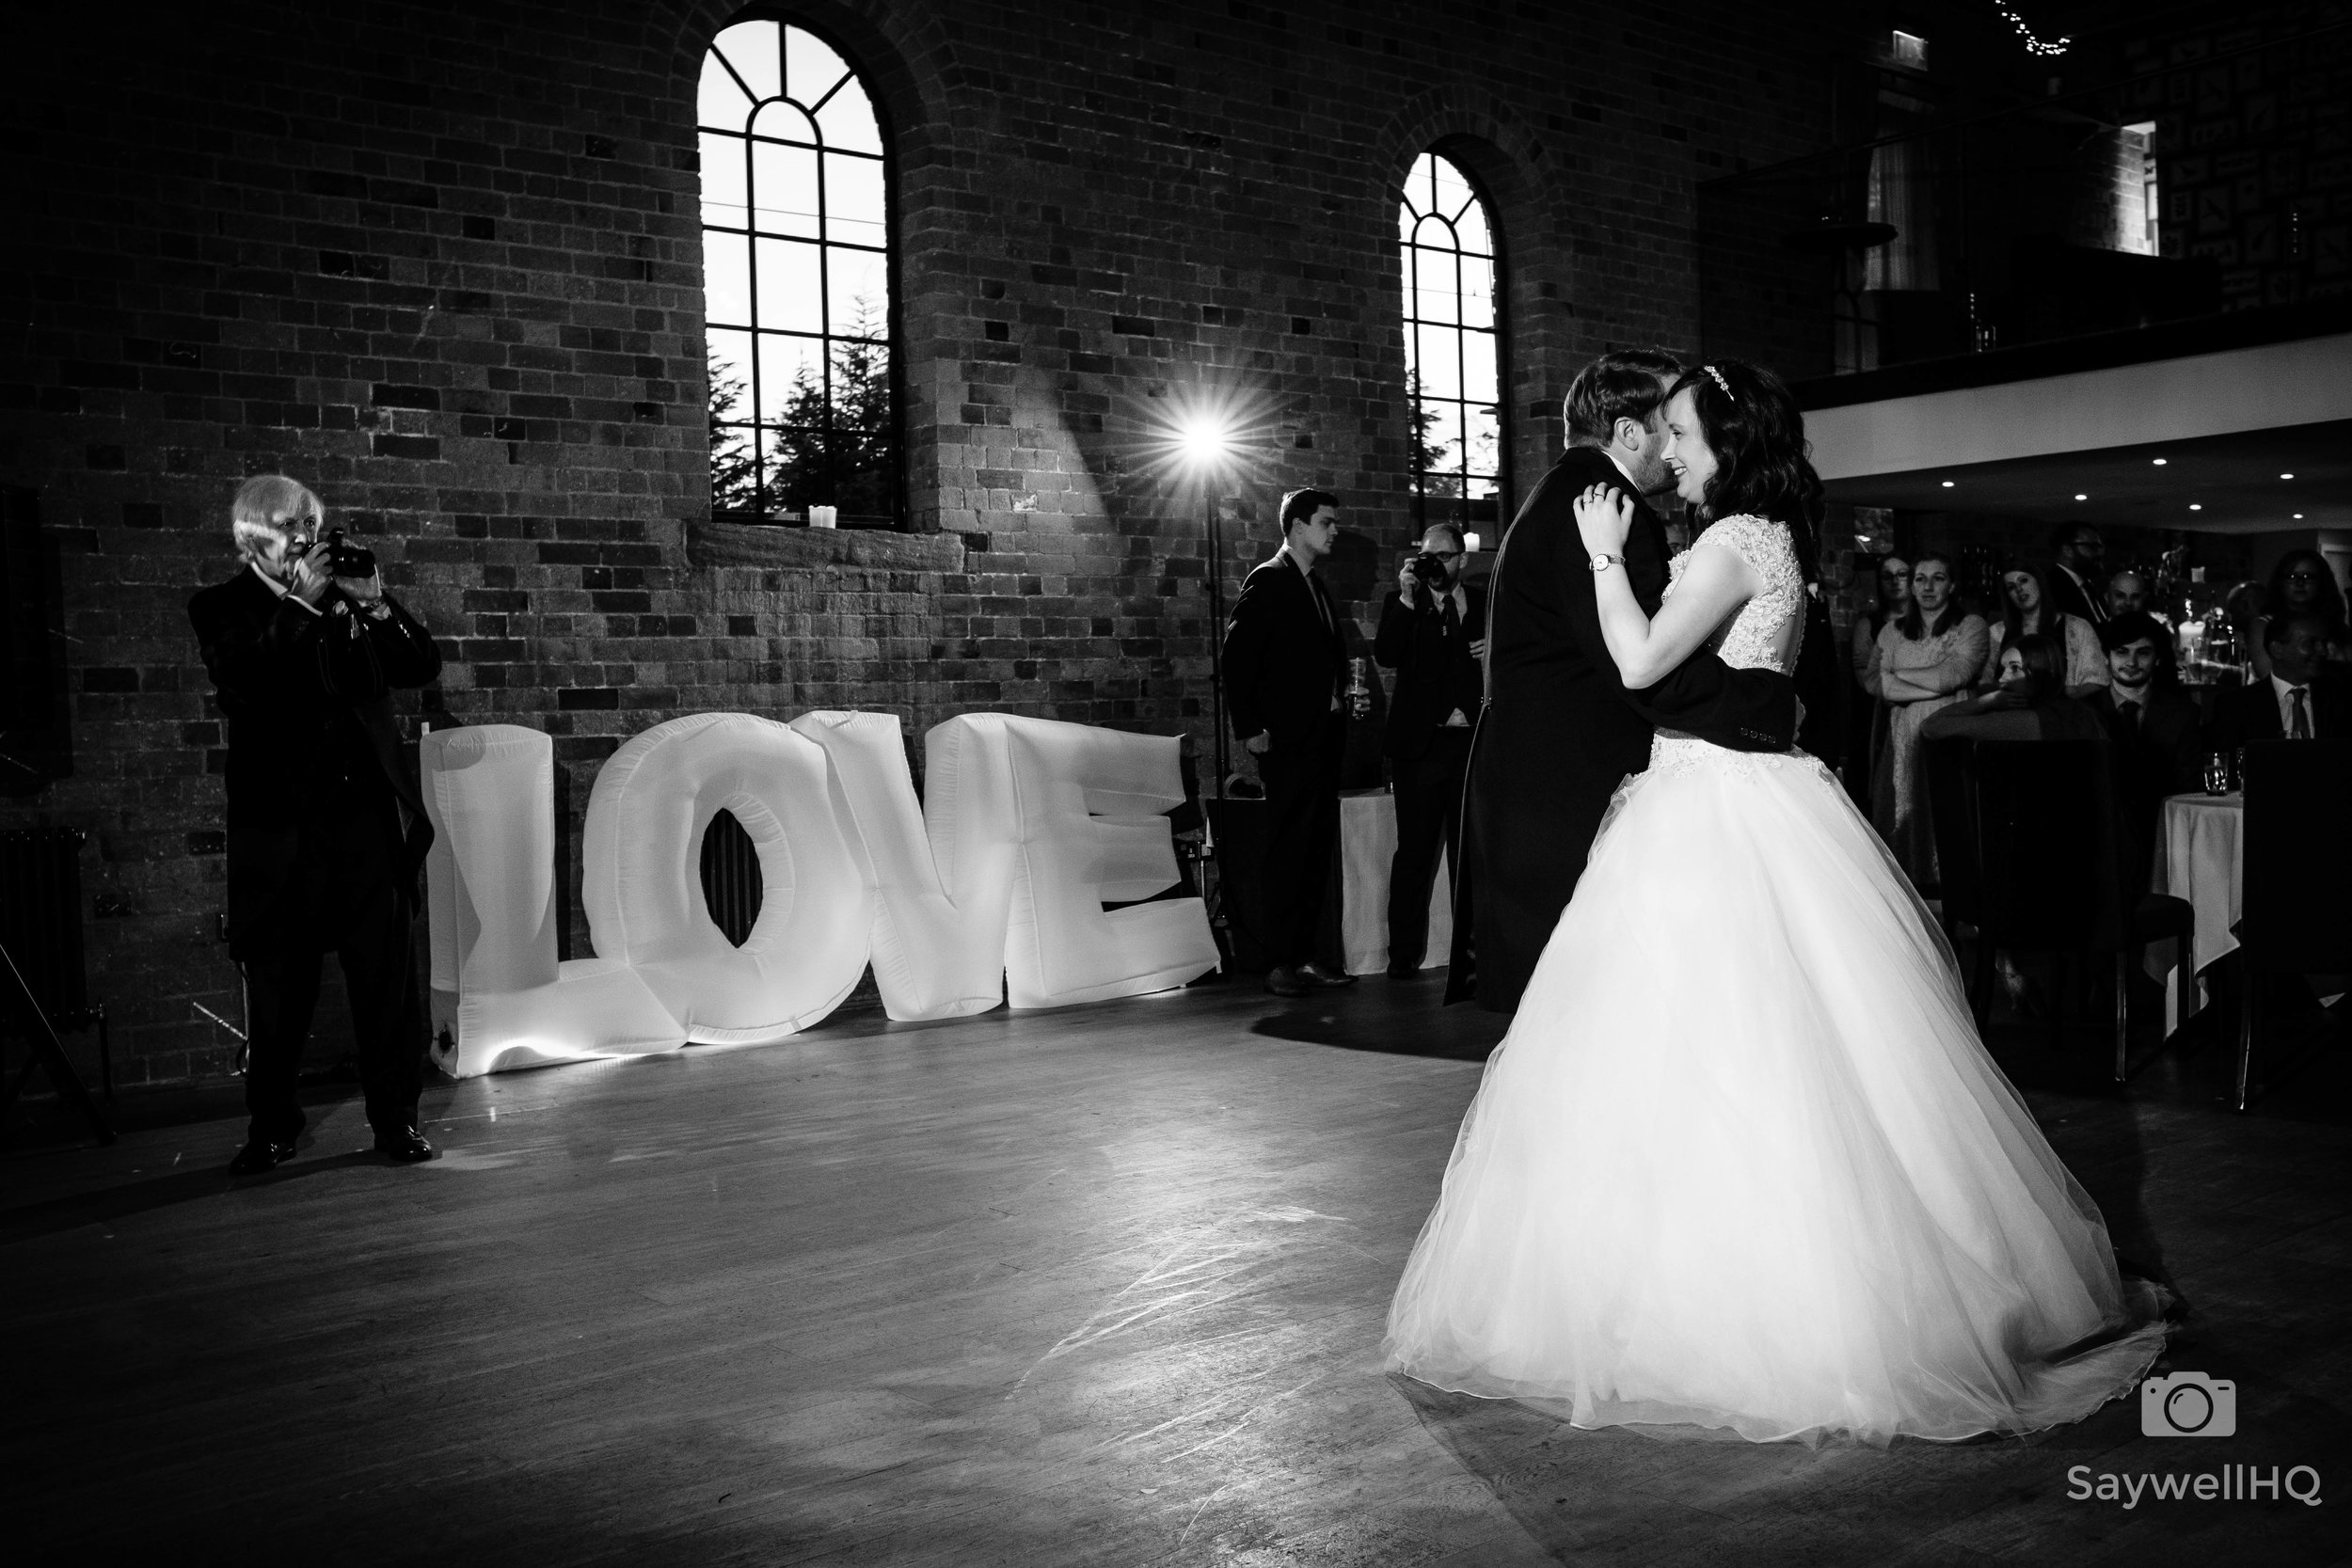 Wedding photography at St Marys Church Nottingham - bride and groom first dance